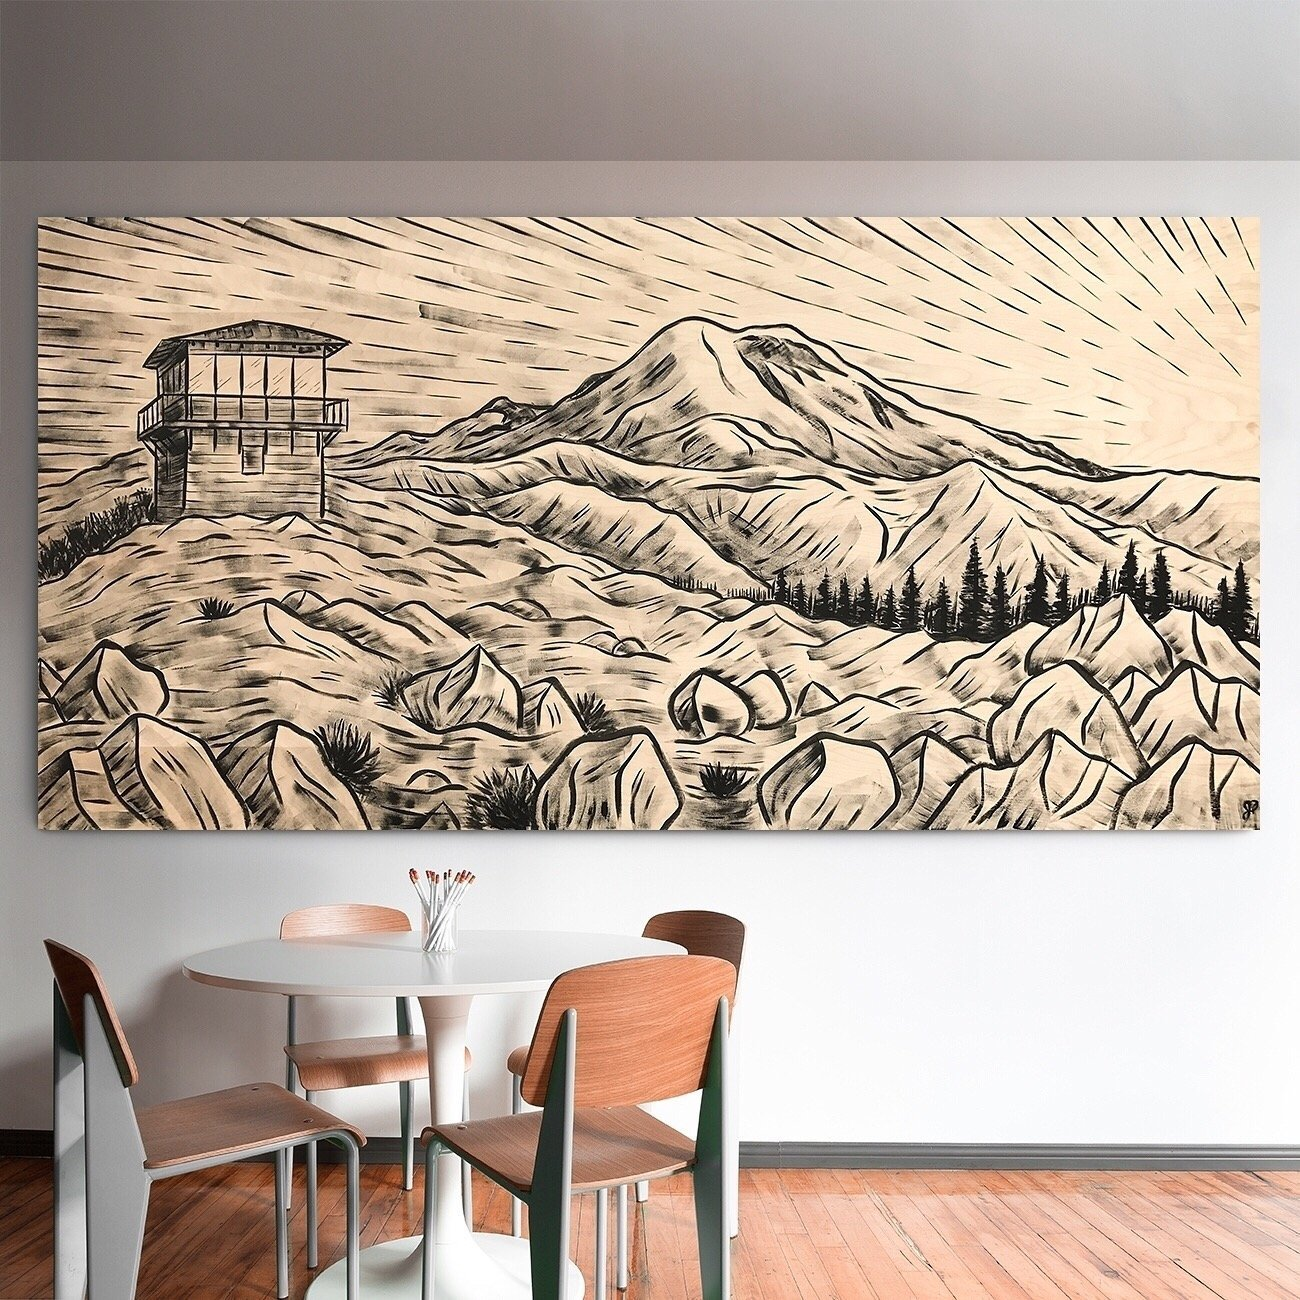 Painting of a fire lookout and Mt. Rainier on wood in an office